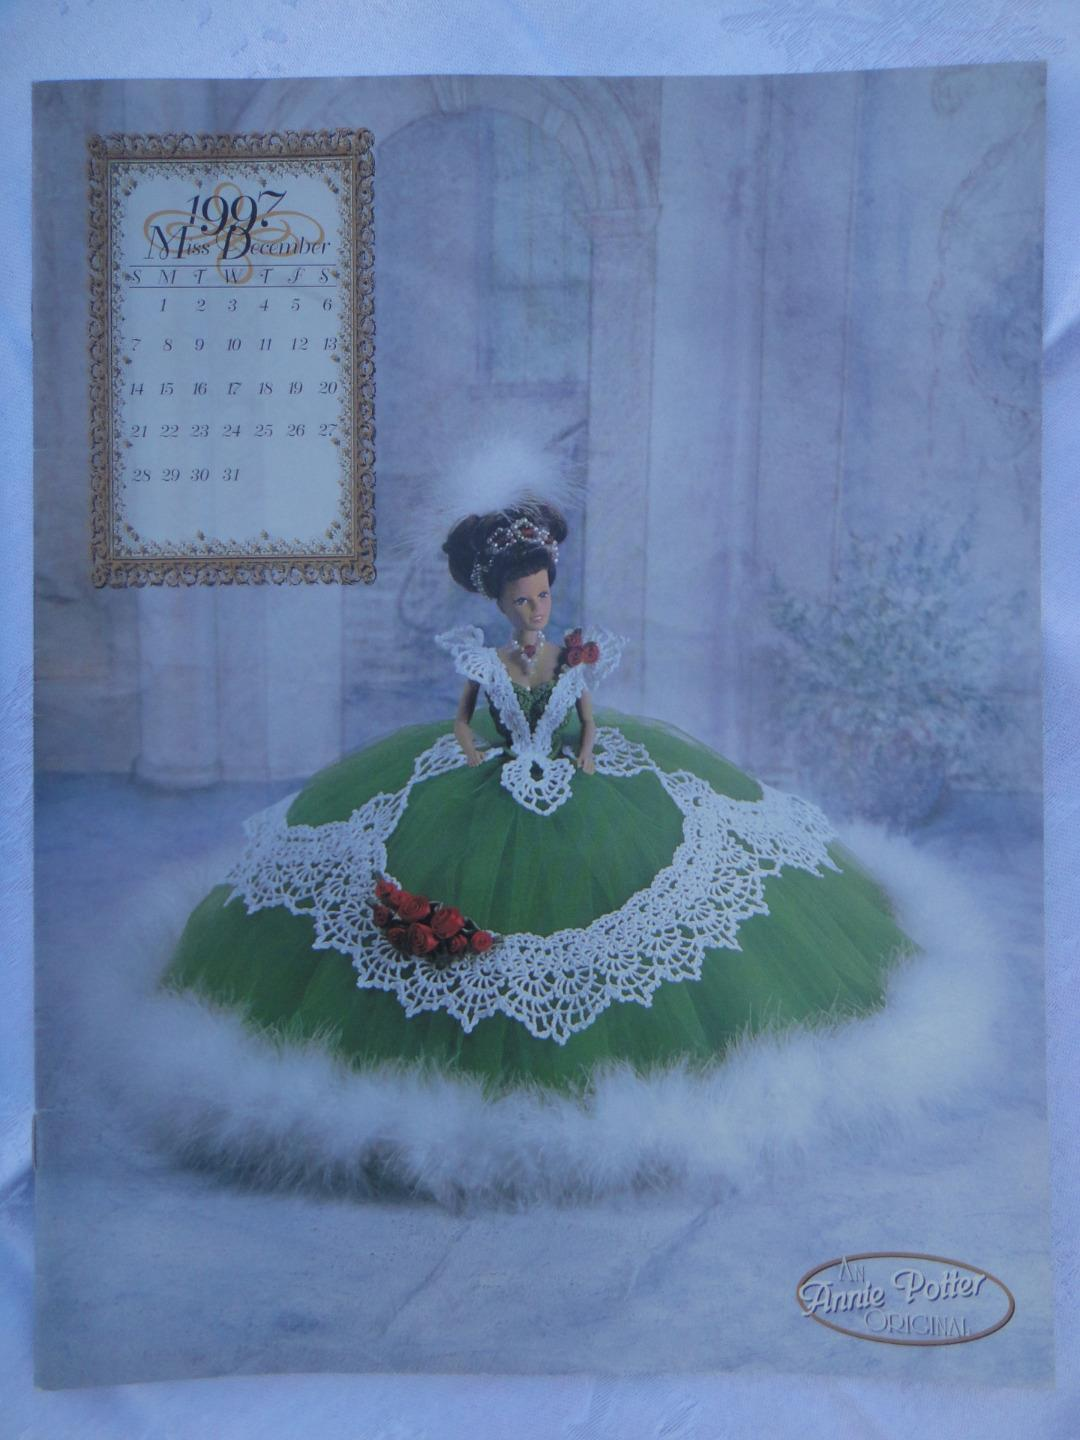 Primary image for ANNIE POTTER ORIGINAL CROCHET 1997 MISS DECEMBER Doll Costume Pattern